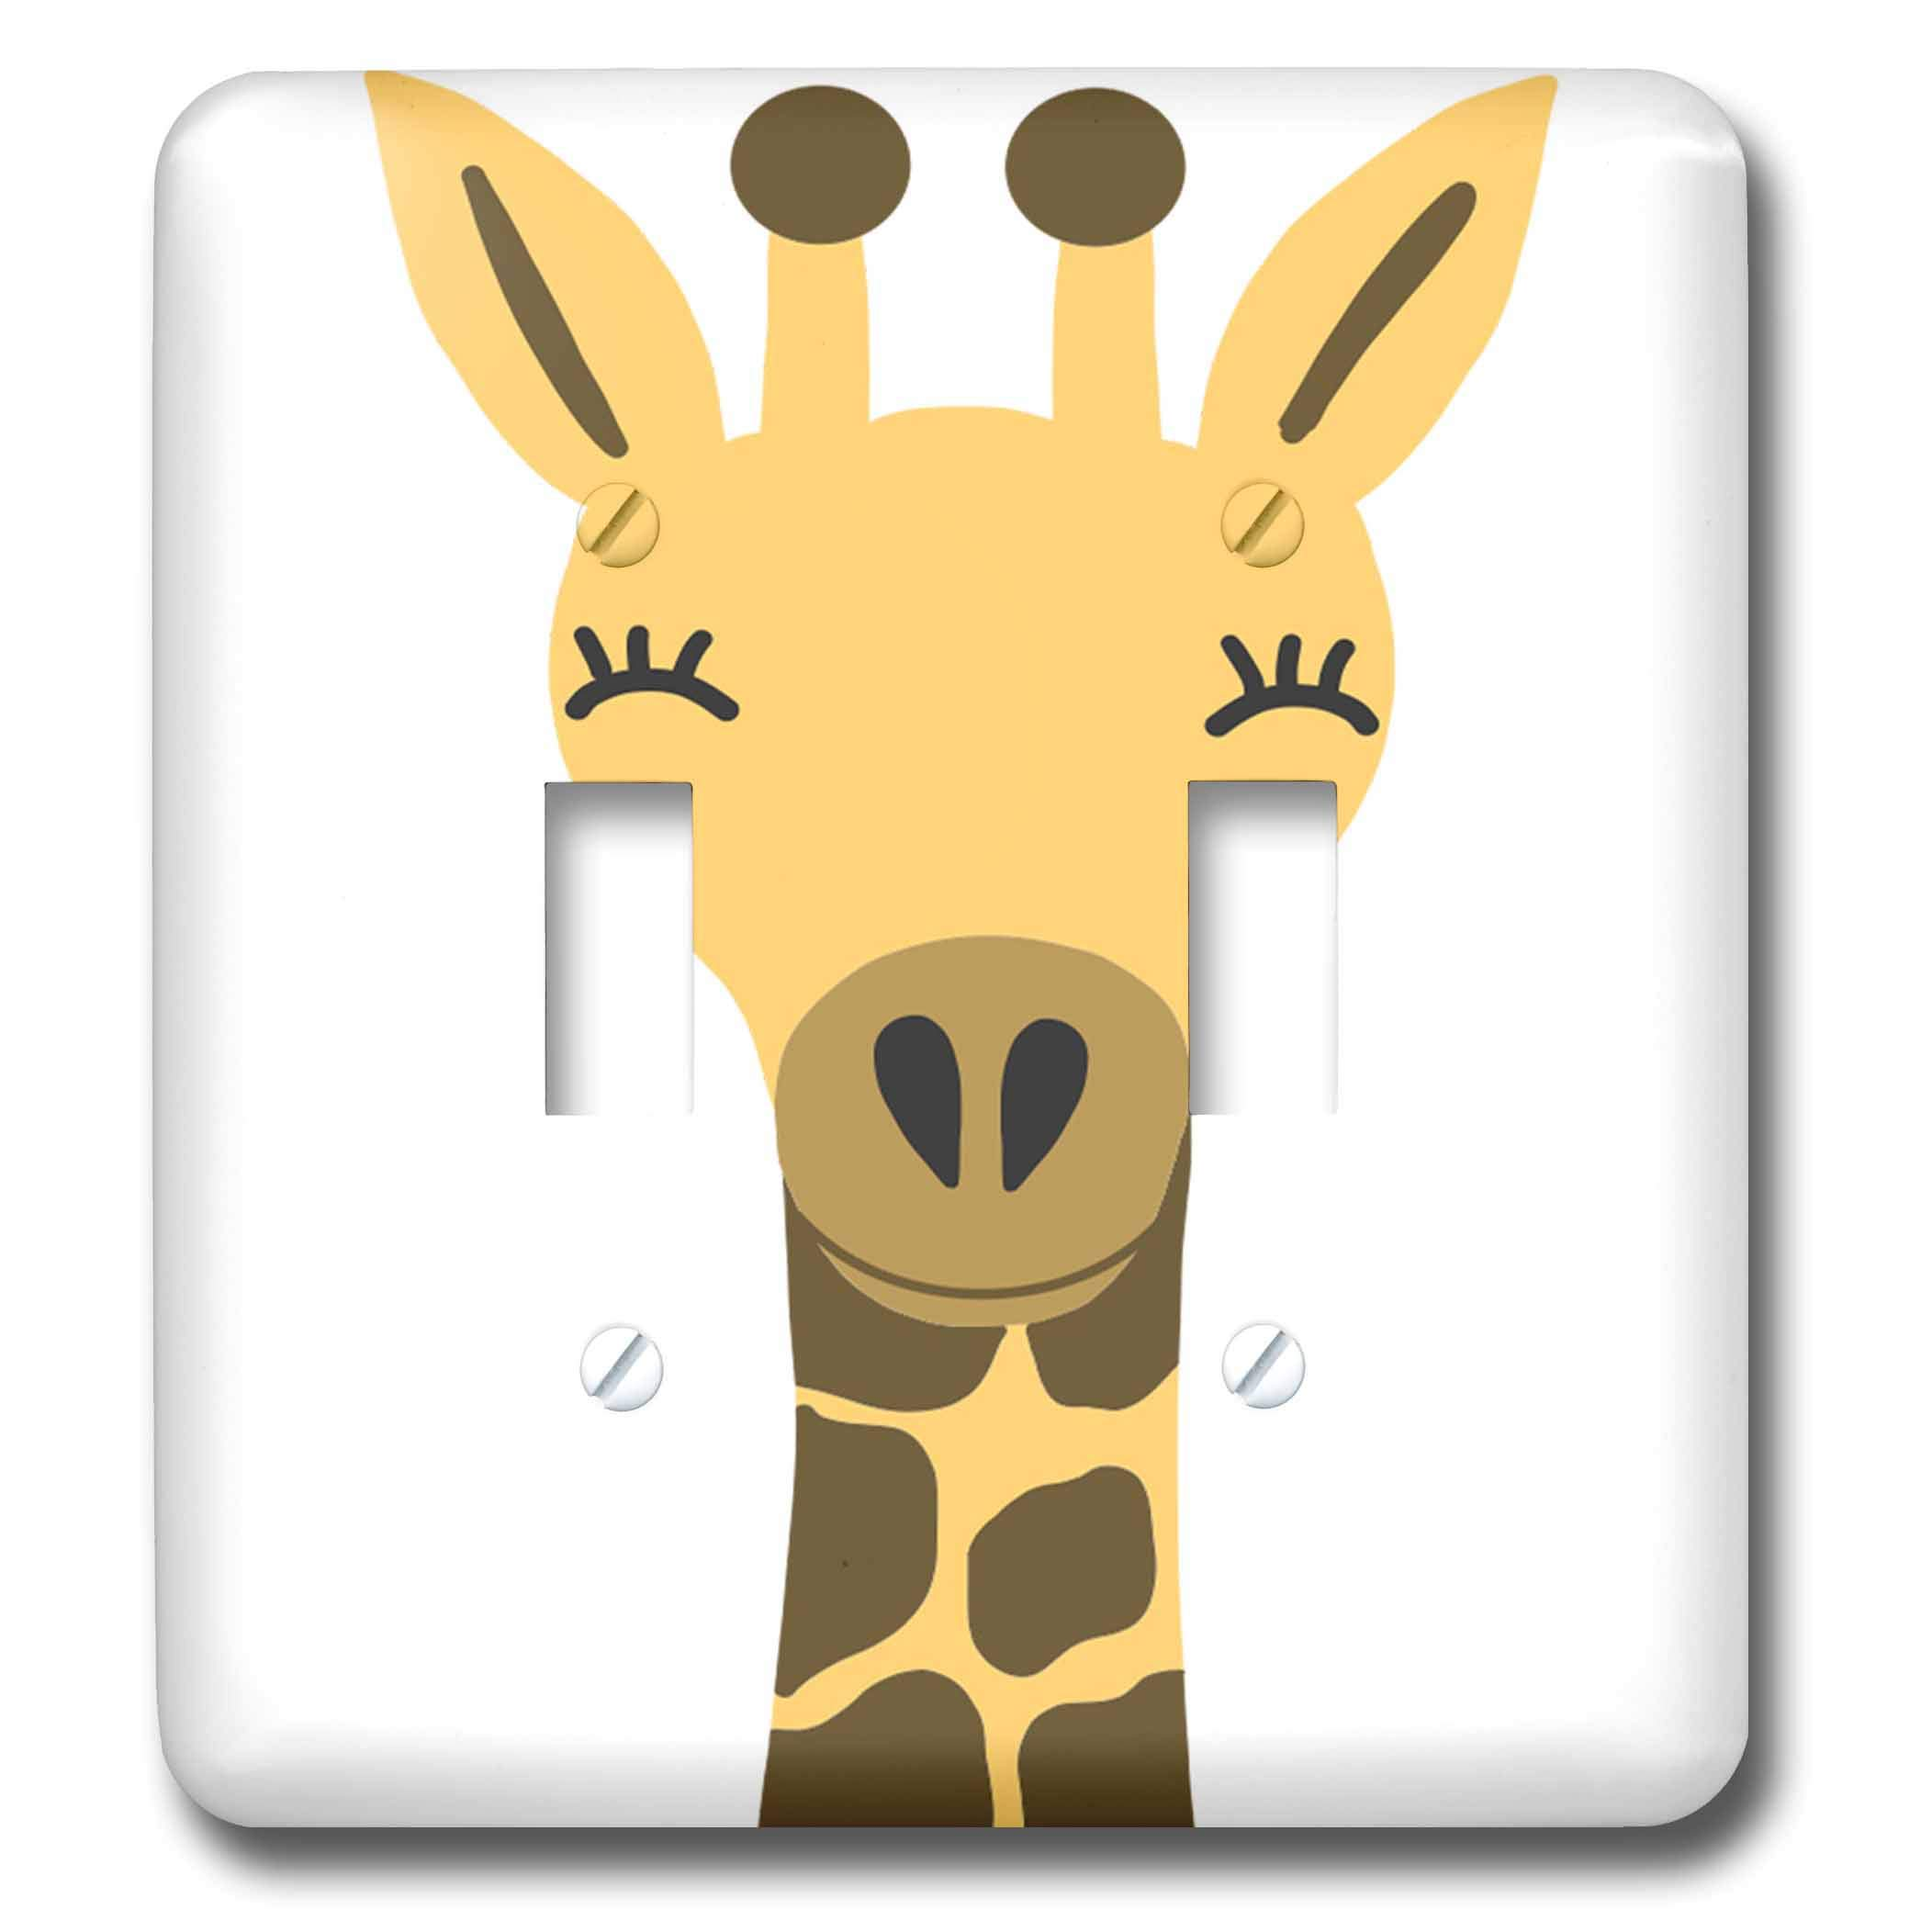 3dRose AllSouthernDesignTees - Zoo Animals - Cool cute yellow giraffe cartoon - Light Switch Covers - double toggle switch (lsp_290638_2)